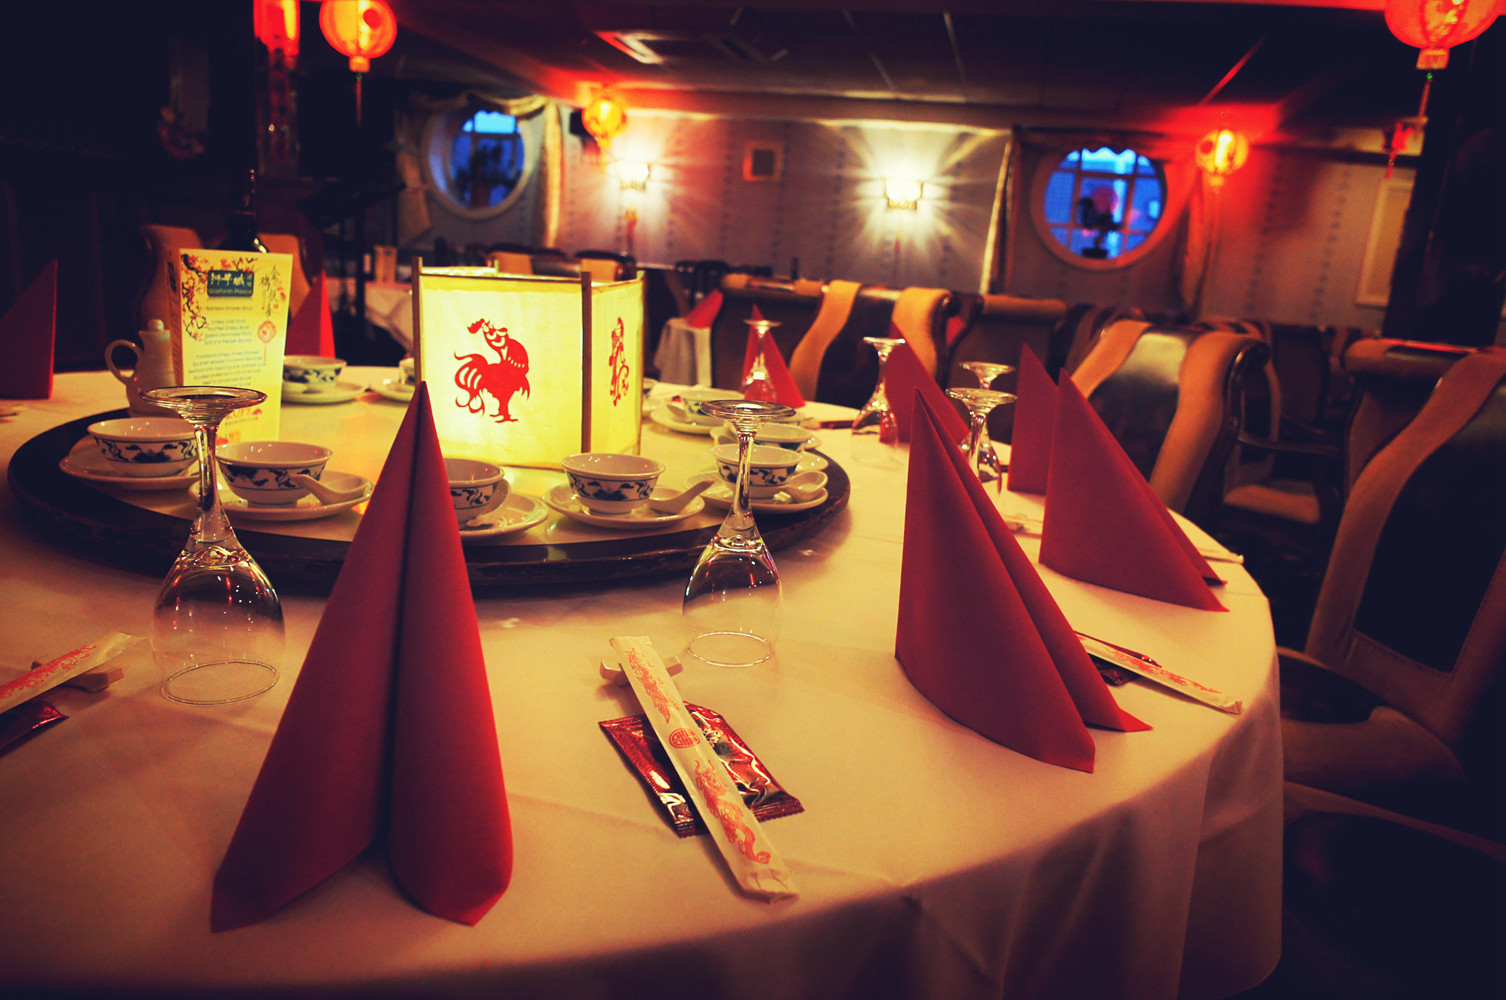 from Chinese restaurant in Gosforth NE3 Newcastle upon Tyne Business lunch family dinner birthday party function room private dinner anniversary dinner christmas party new year eve dinner